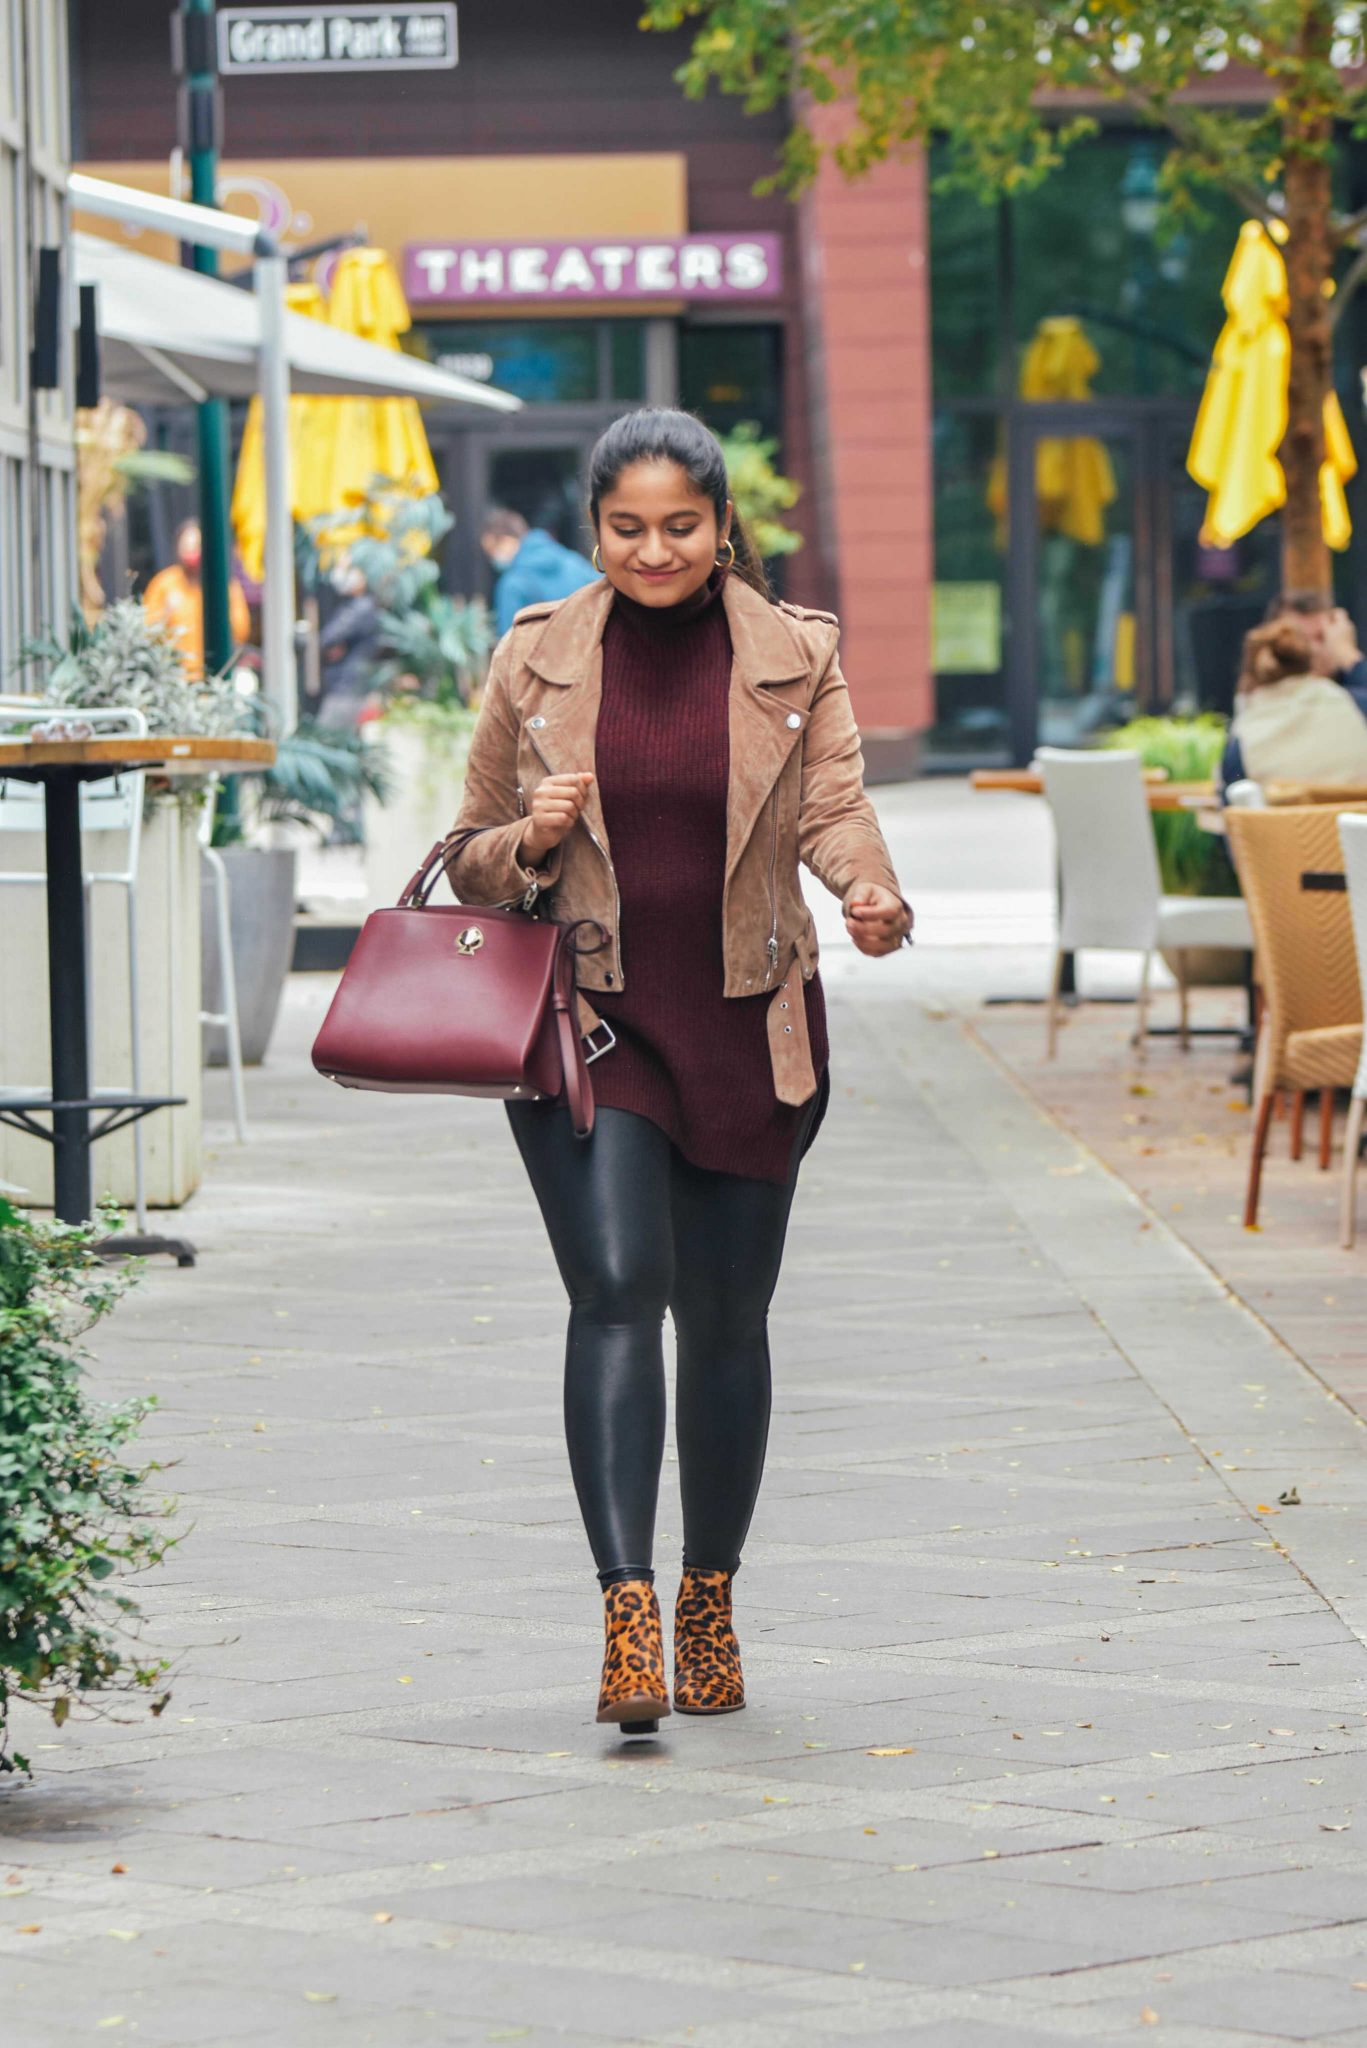 Style Spanx Faux leather legging, Blanknyc Suede moto jacket, madewell Regan Boot in Leopard-maternity style |Cute Thanksgiving Outfits by popular Maryland modest fashion blog, Dreaming Loud: image of a woman wearing Spanx Faux leather legging, Blanknyc Suede moto jacket, leopard print boots and carrying a Kate spade Romy Satchel.